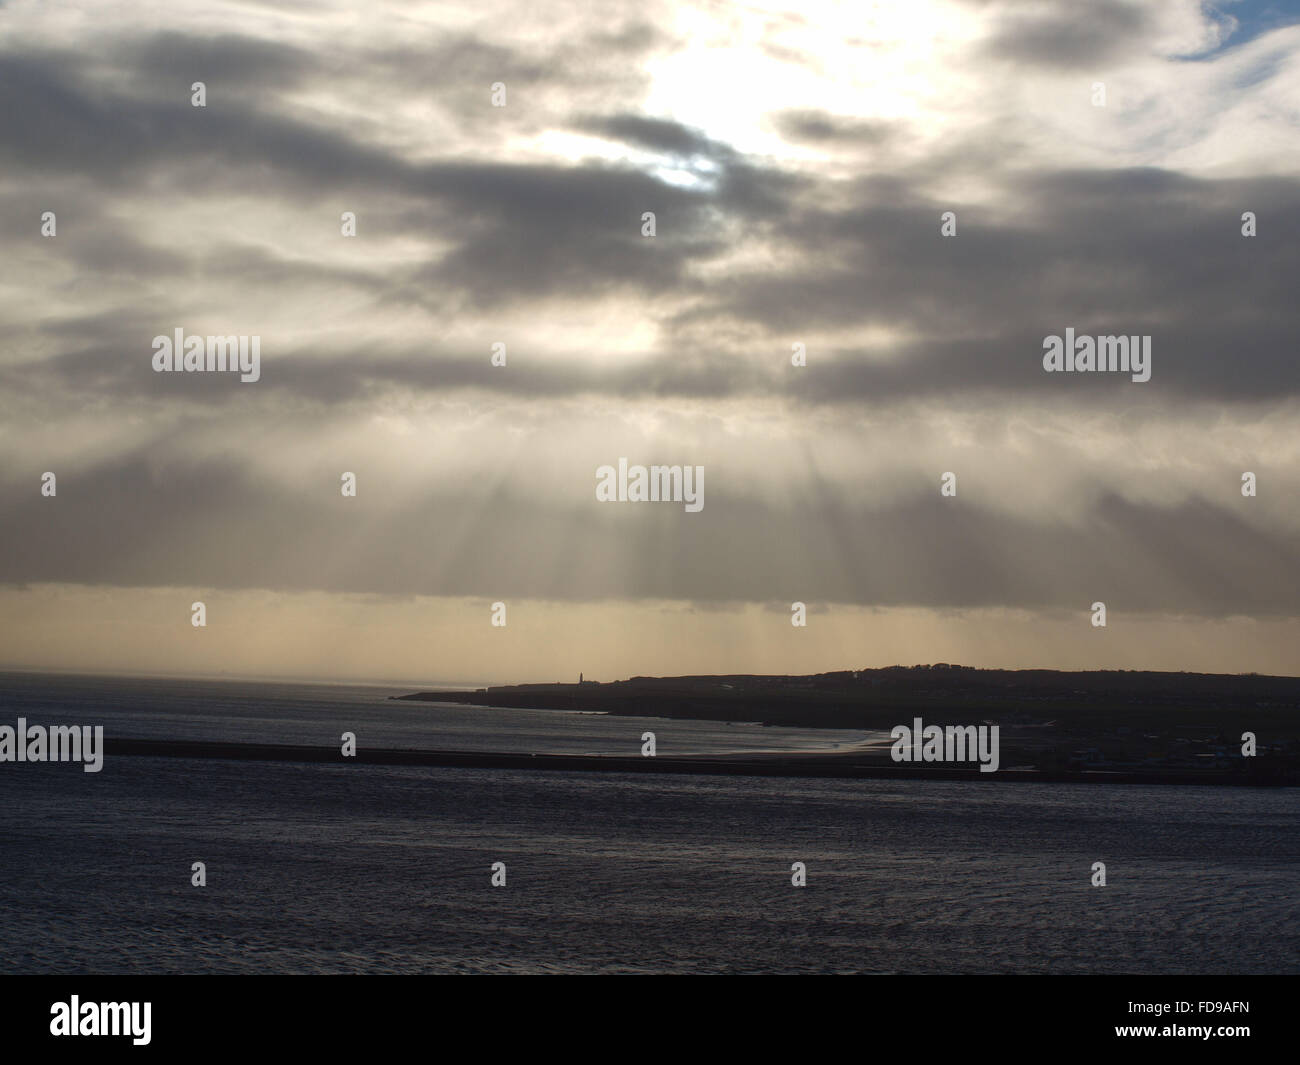 Newcastle Upon Tyne, 29th January 2016, UK Weather. Blustery storm clouds over the North East coastline at South - Stock Image